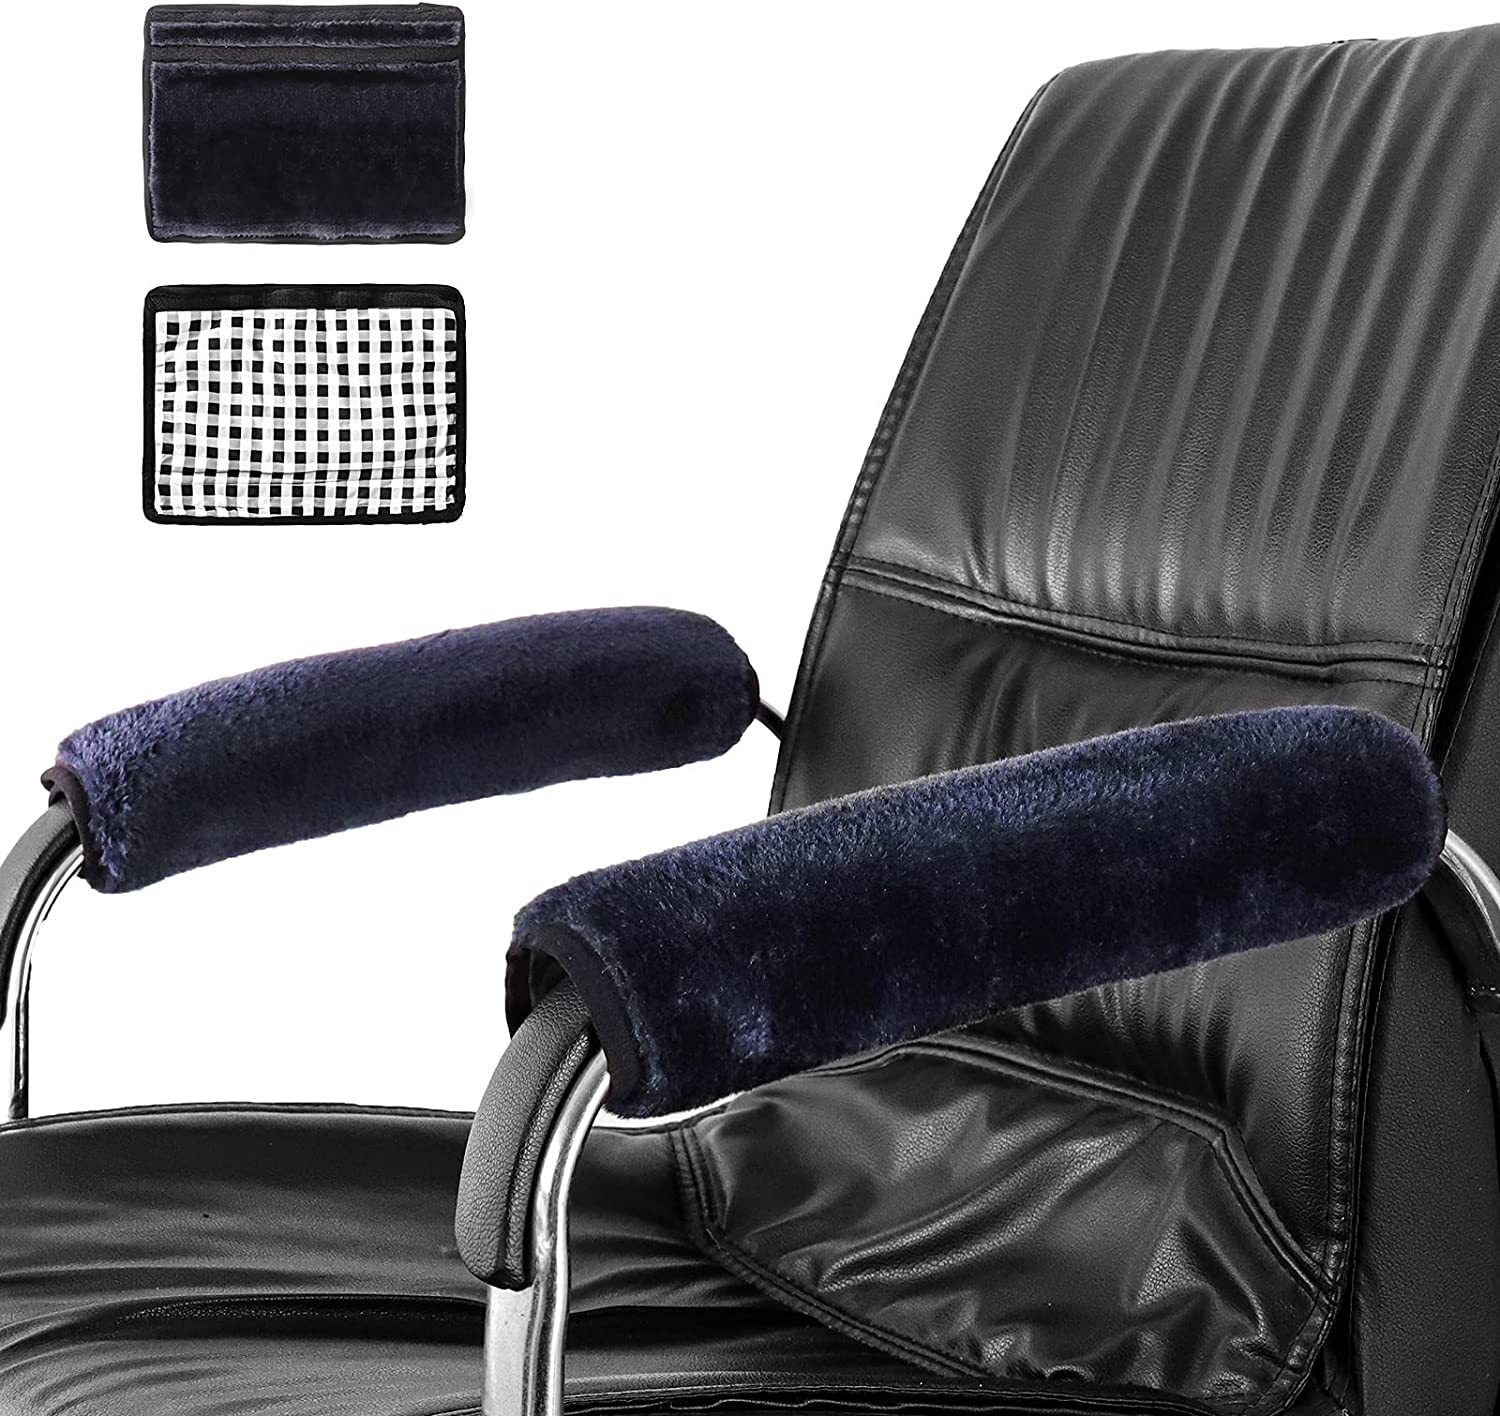 MLGB Chair Armrest Pads Office Chair Arm Cushions Ergonomic Chair Arm Rest Covers Furniture Protectors 2 Piece Comfy Gaming Desk Chair Elbow Pillow Support for Elbows and Forearms Pressure Relief